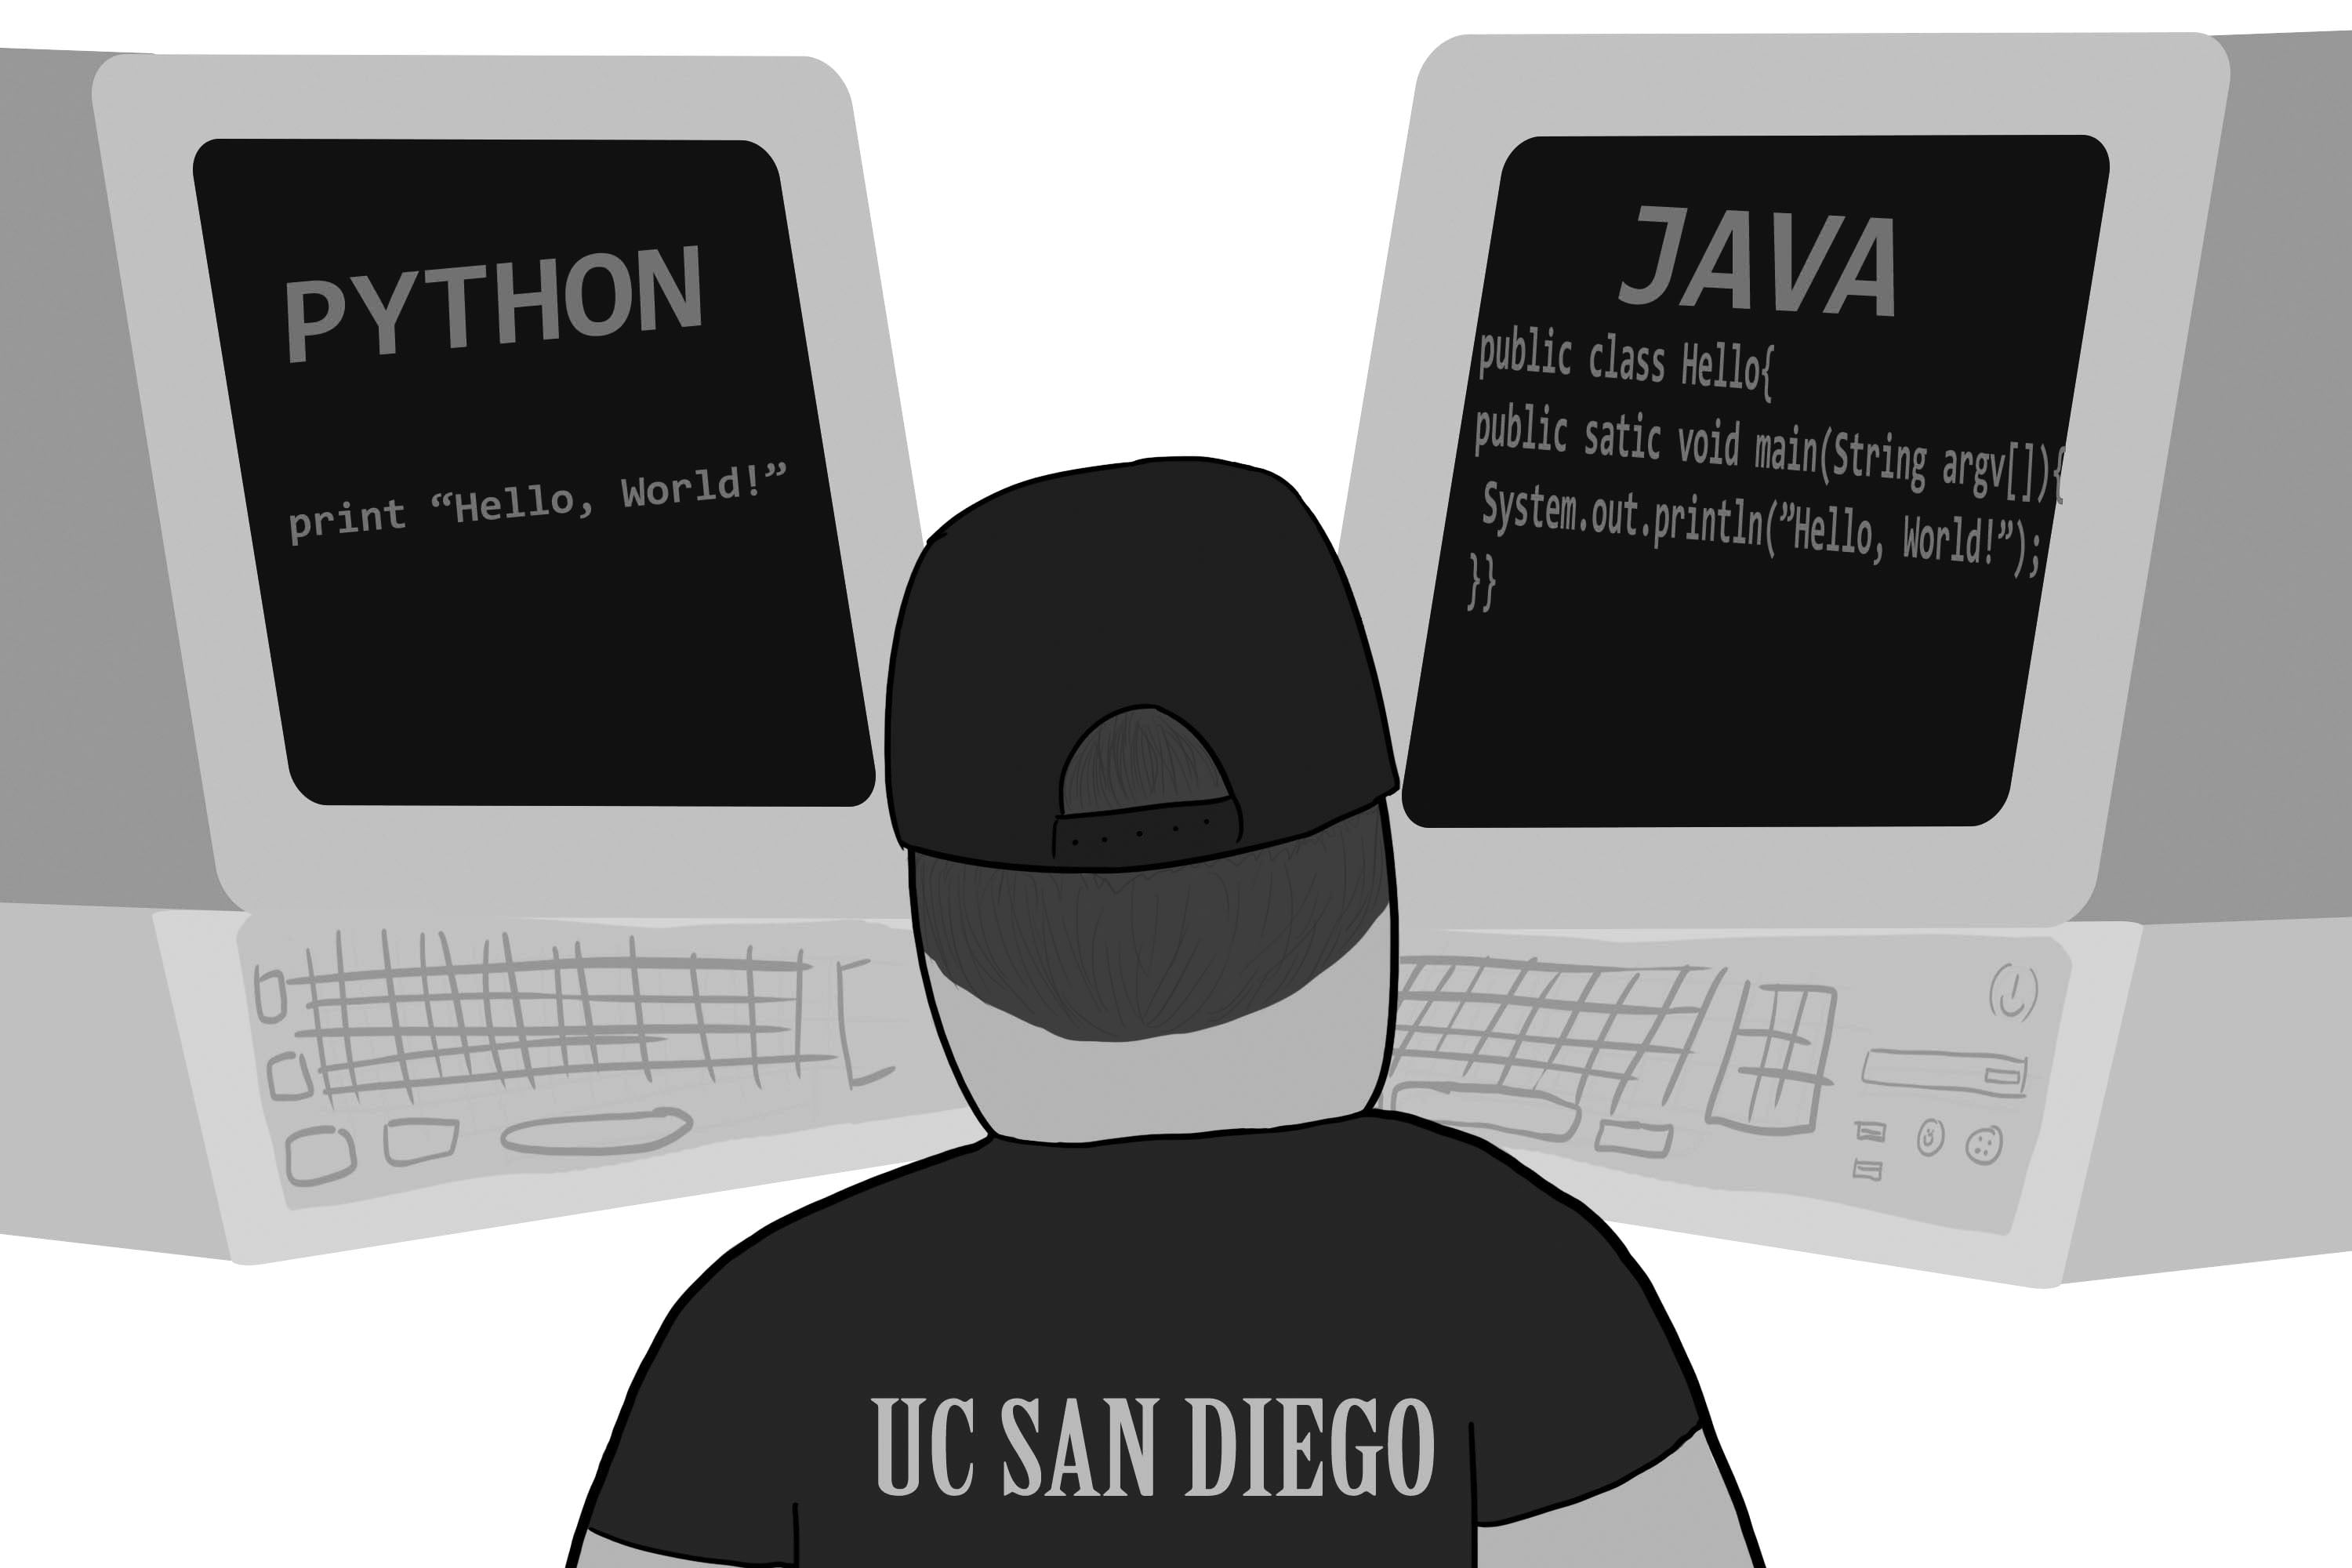 Ubiquitous and Industry-Favored, Python Should be Taught in